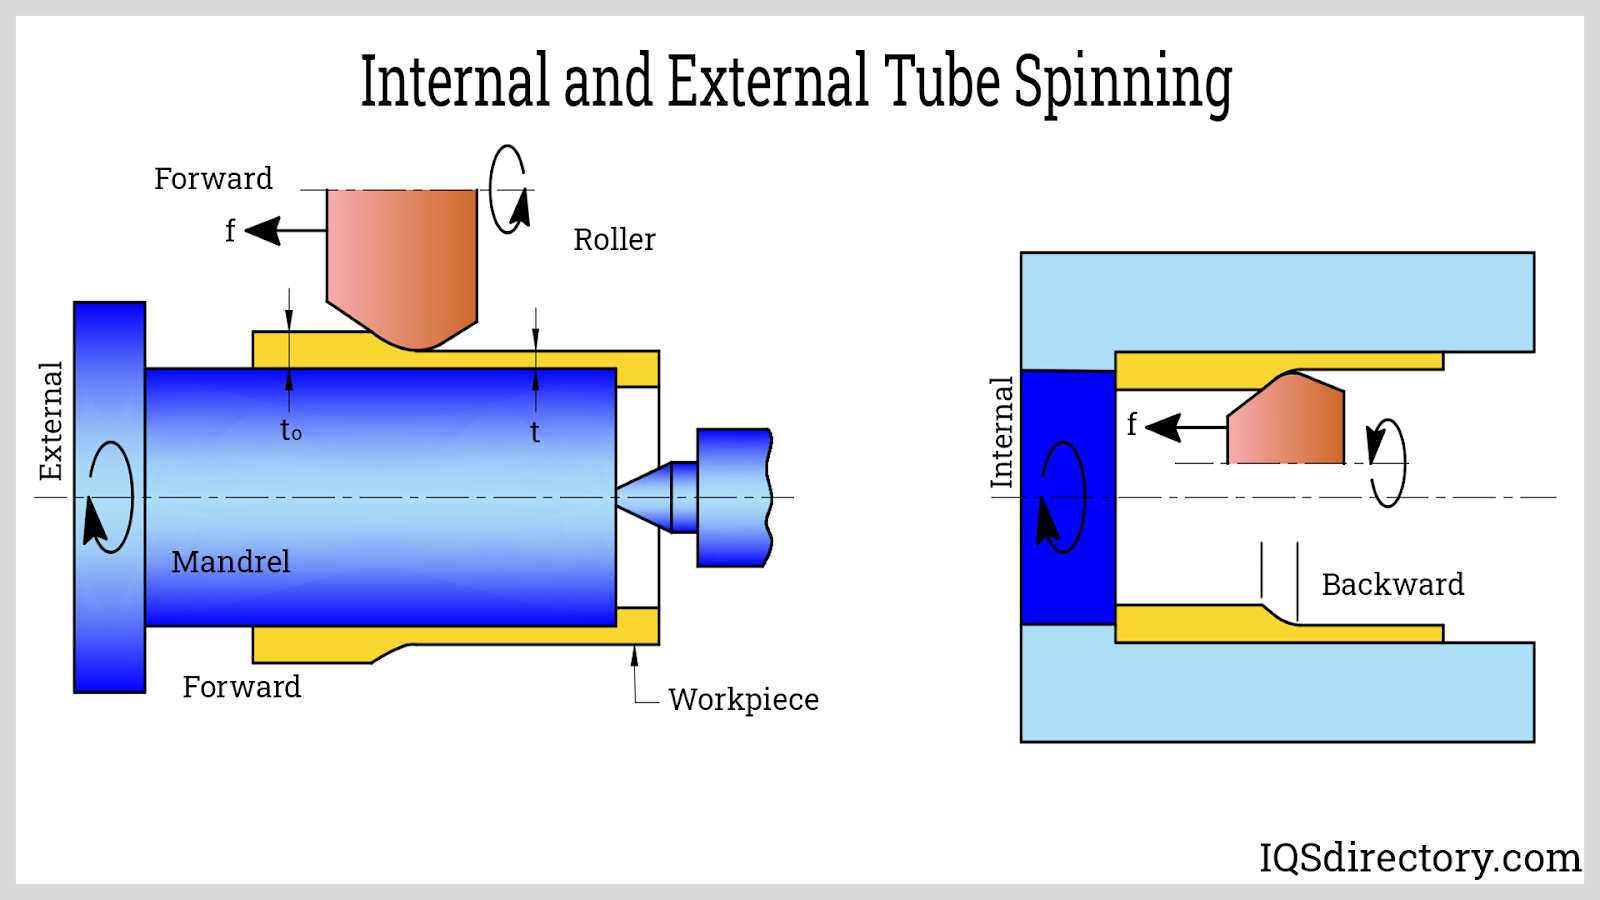 Internal and External Tube Spinning